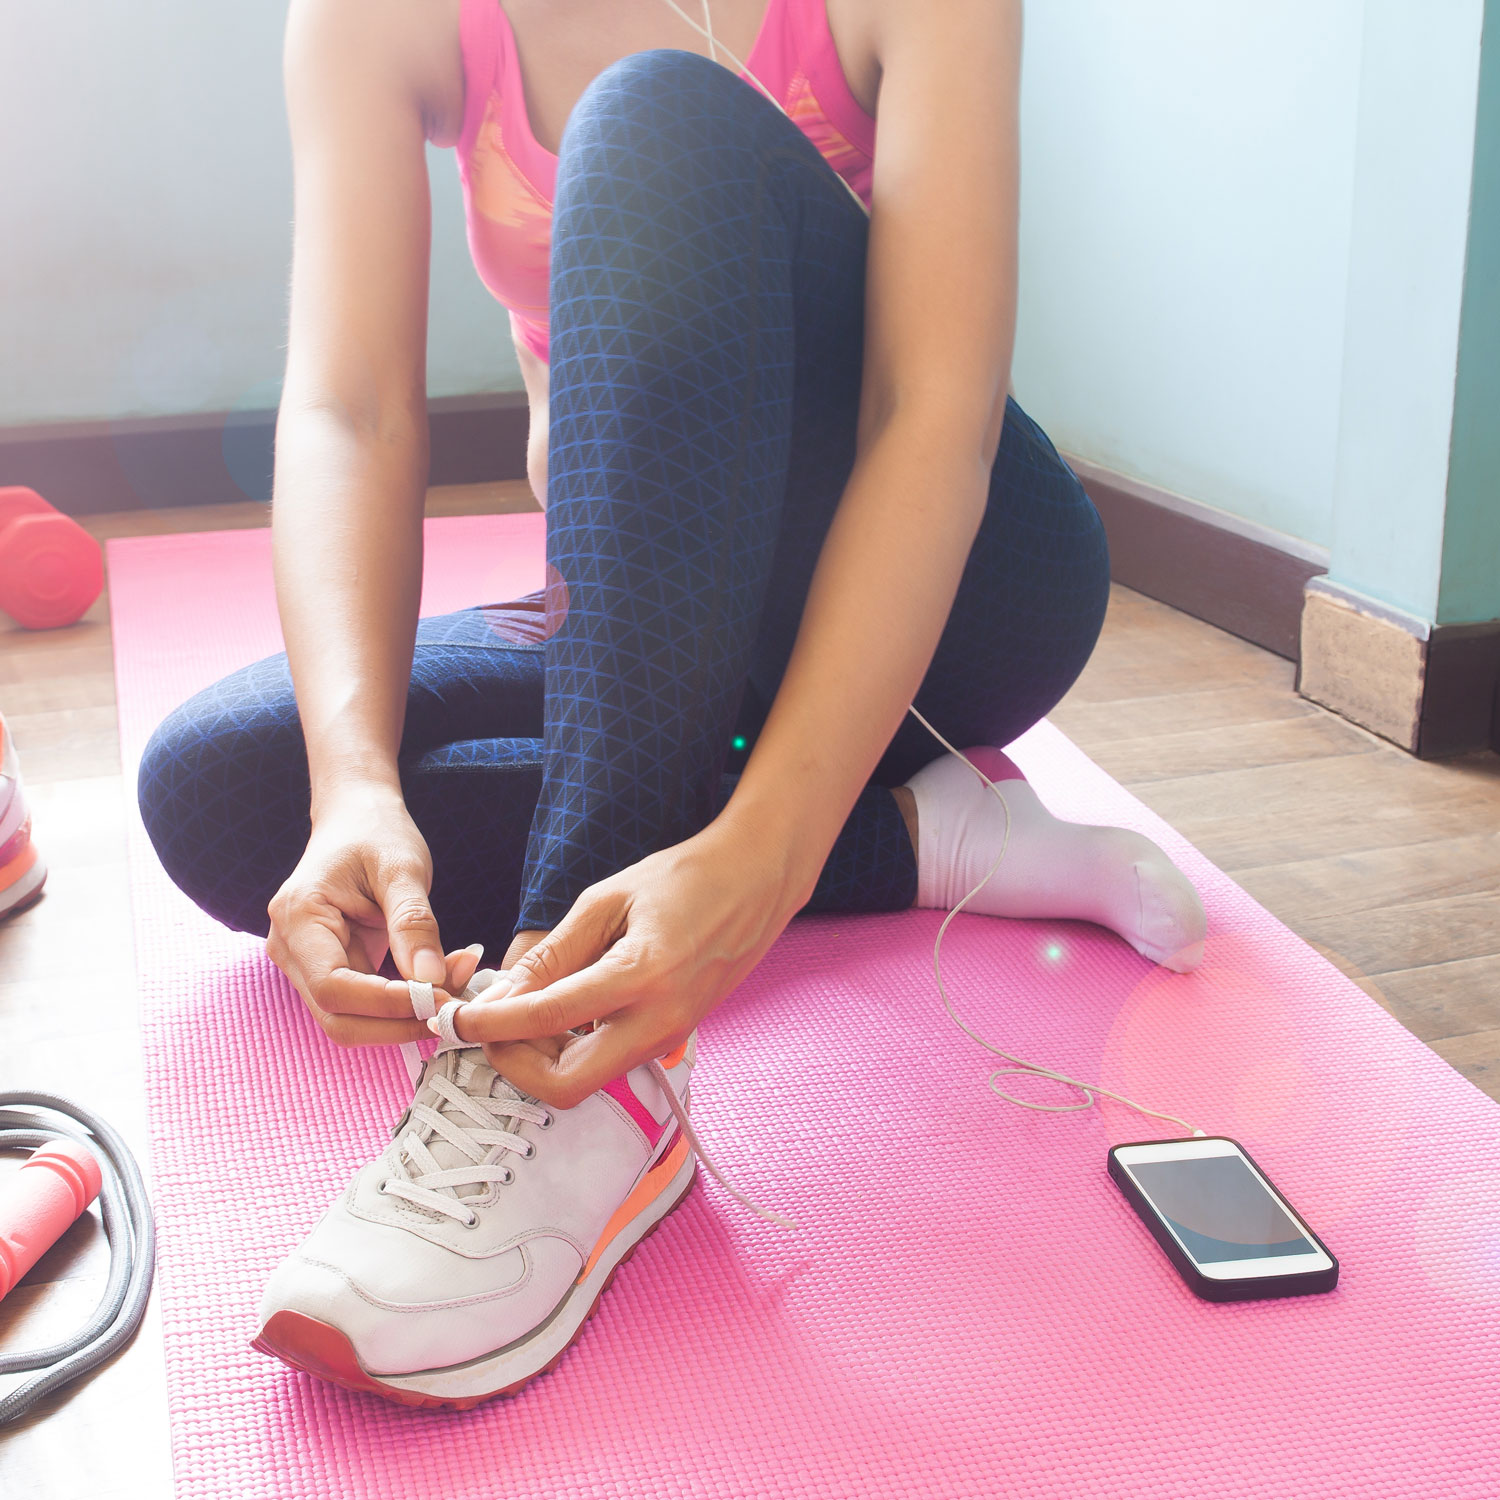 Woman preparing to exercise at home